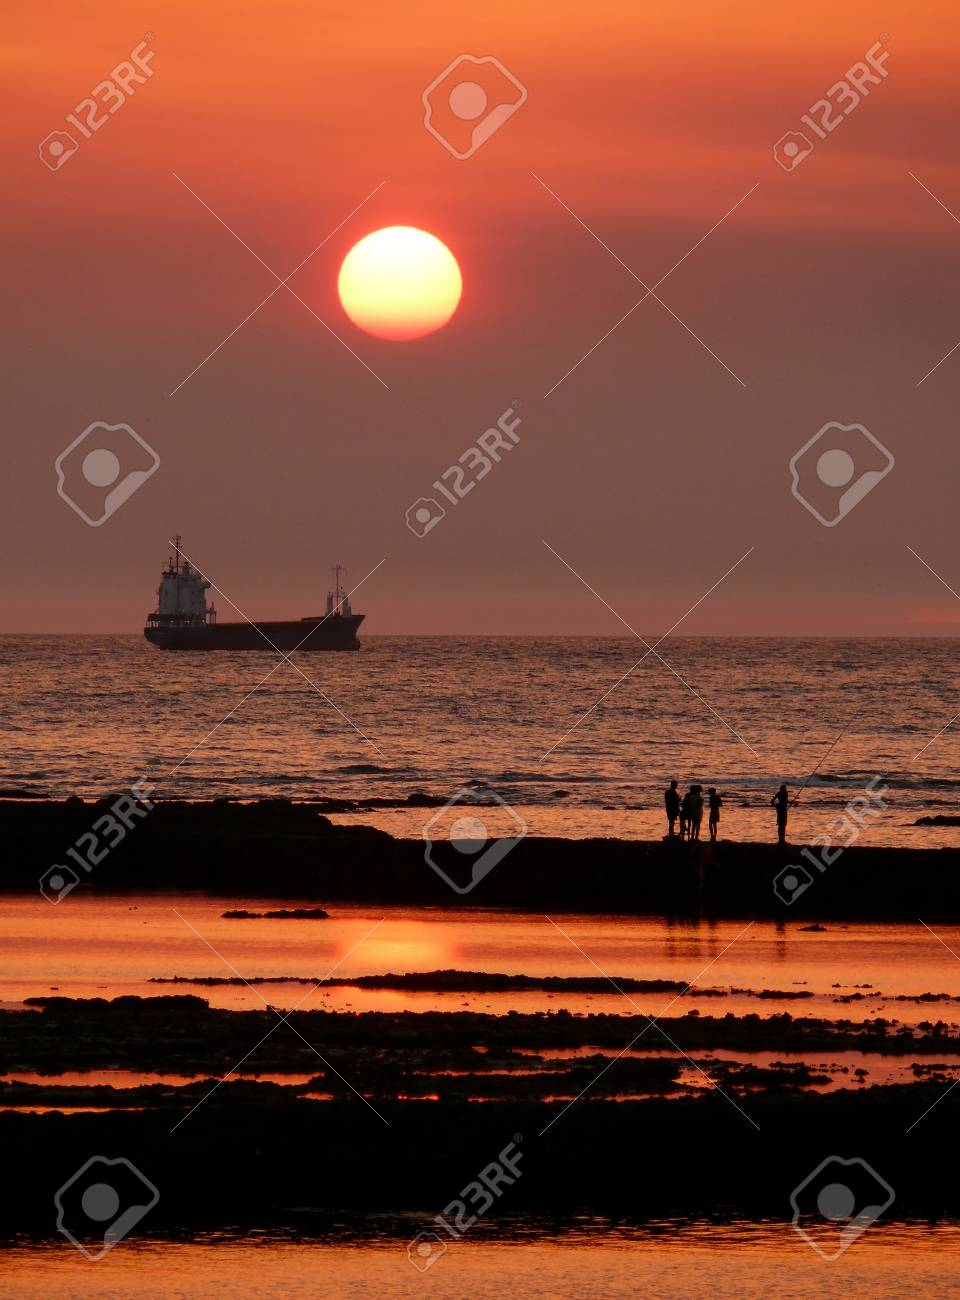 sunset with fishermen on the shore and boat Stock Photo - 19259991